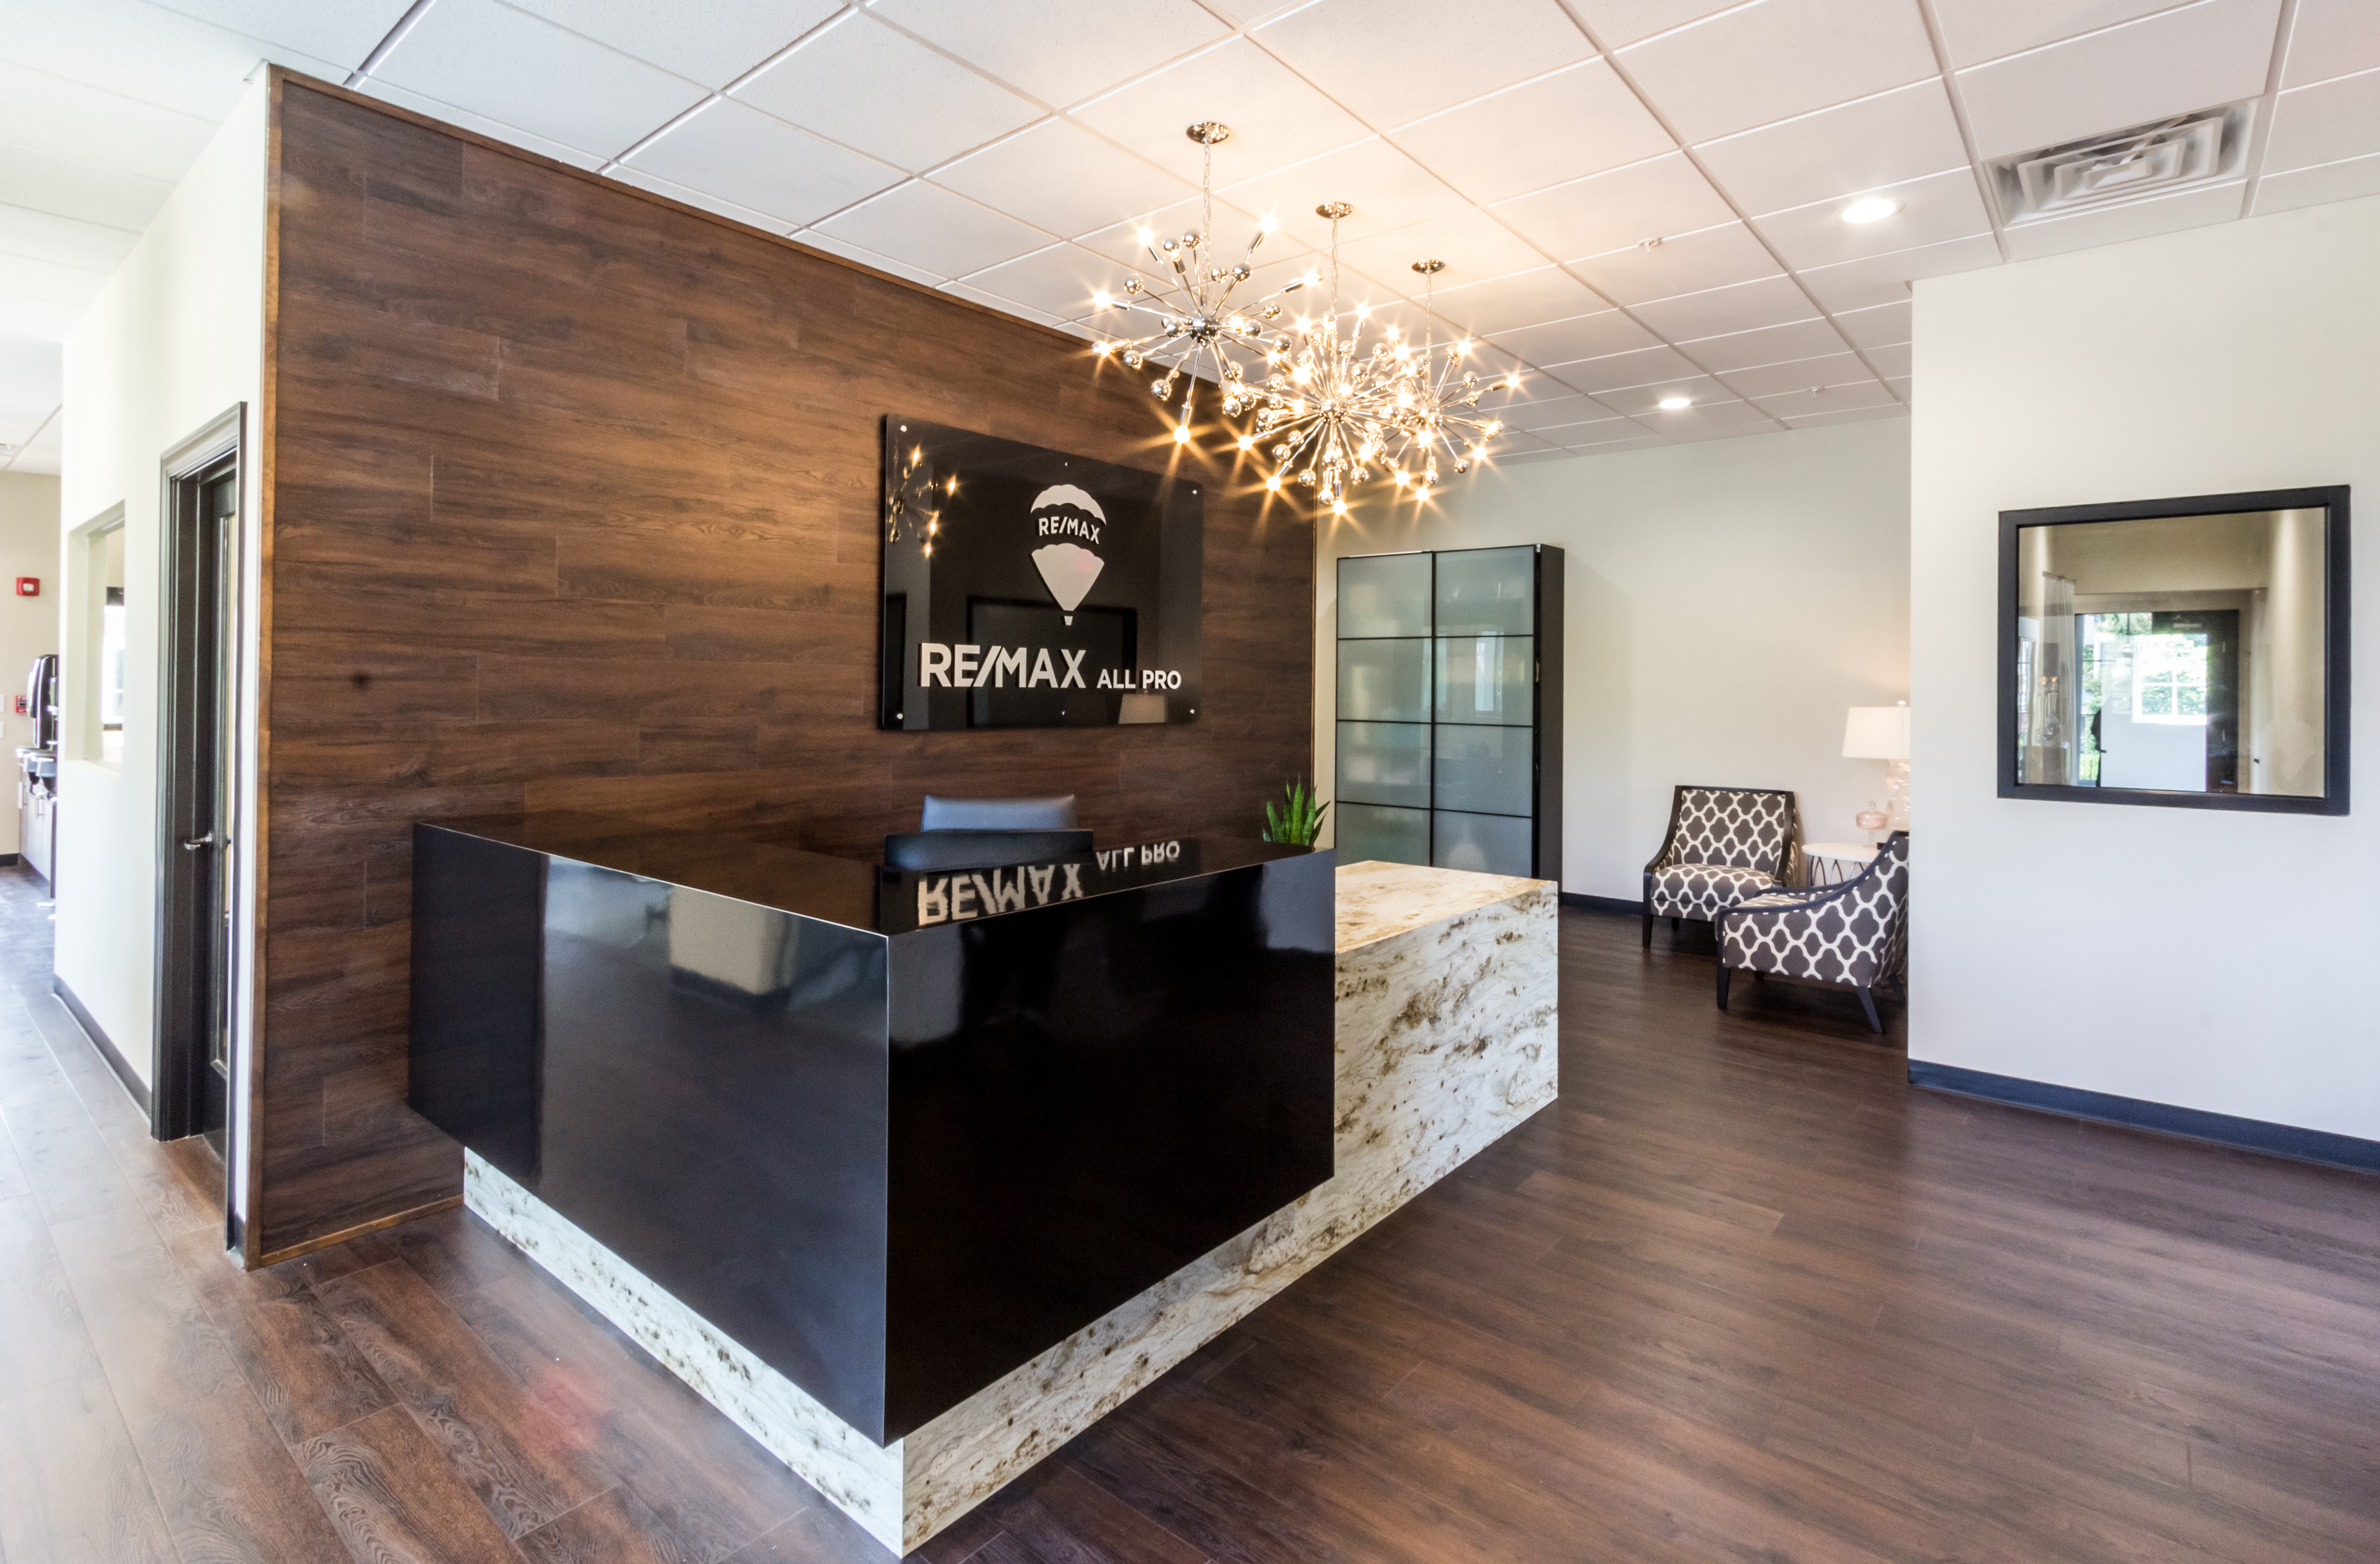 Remax reception desk under three globe lights